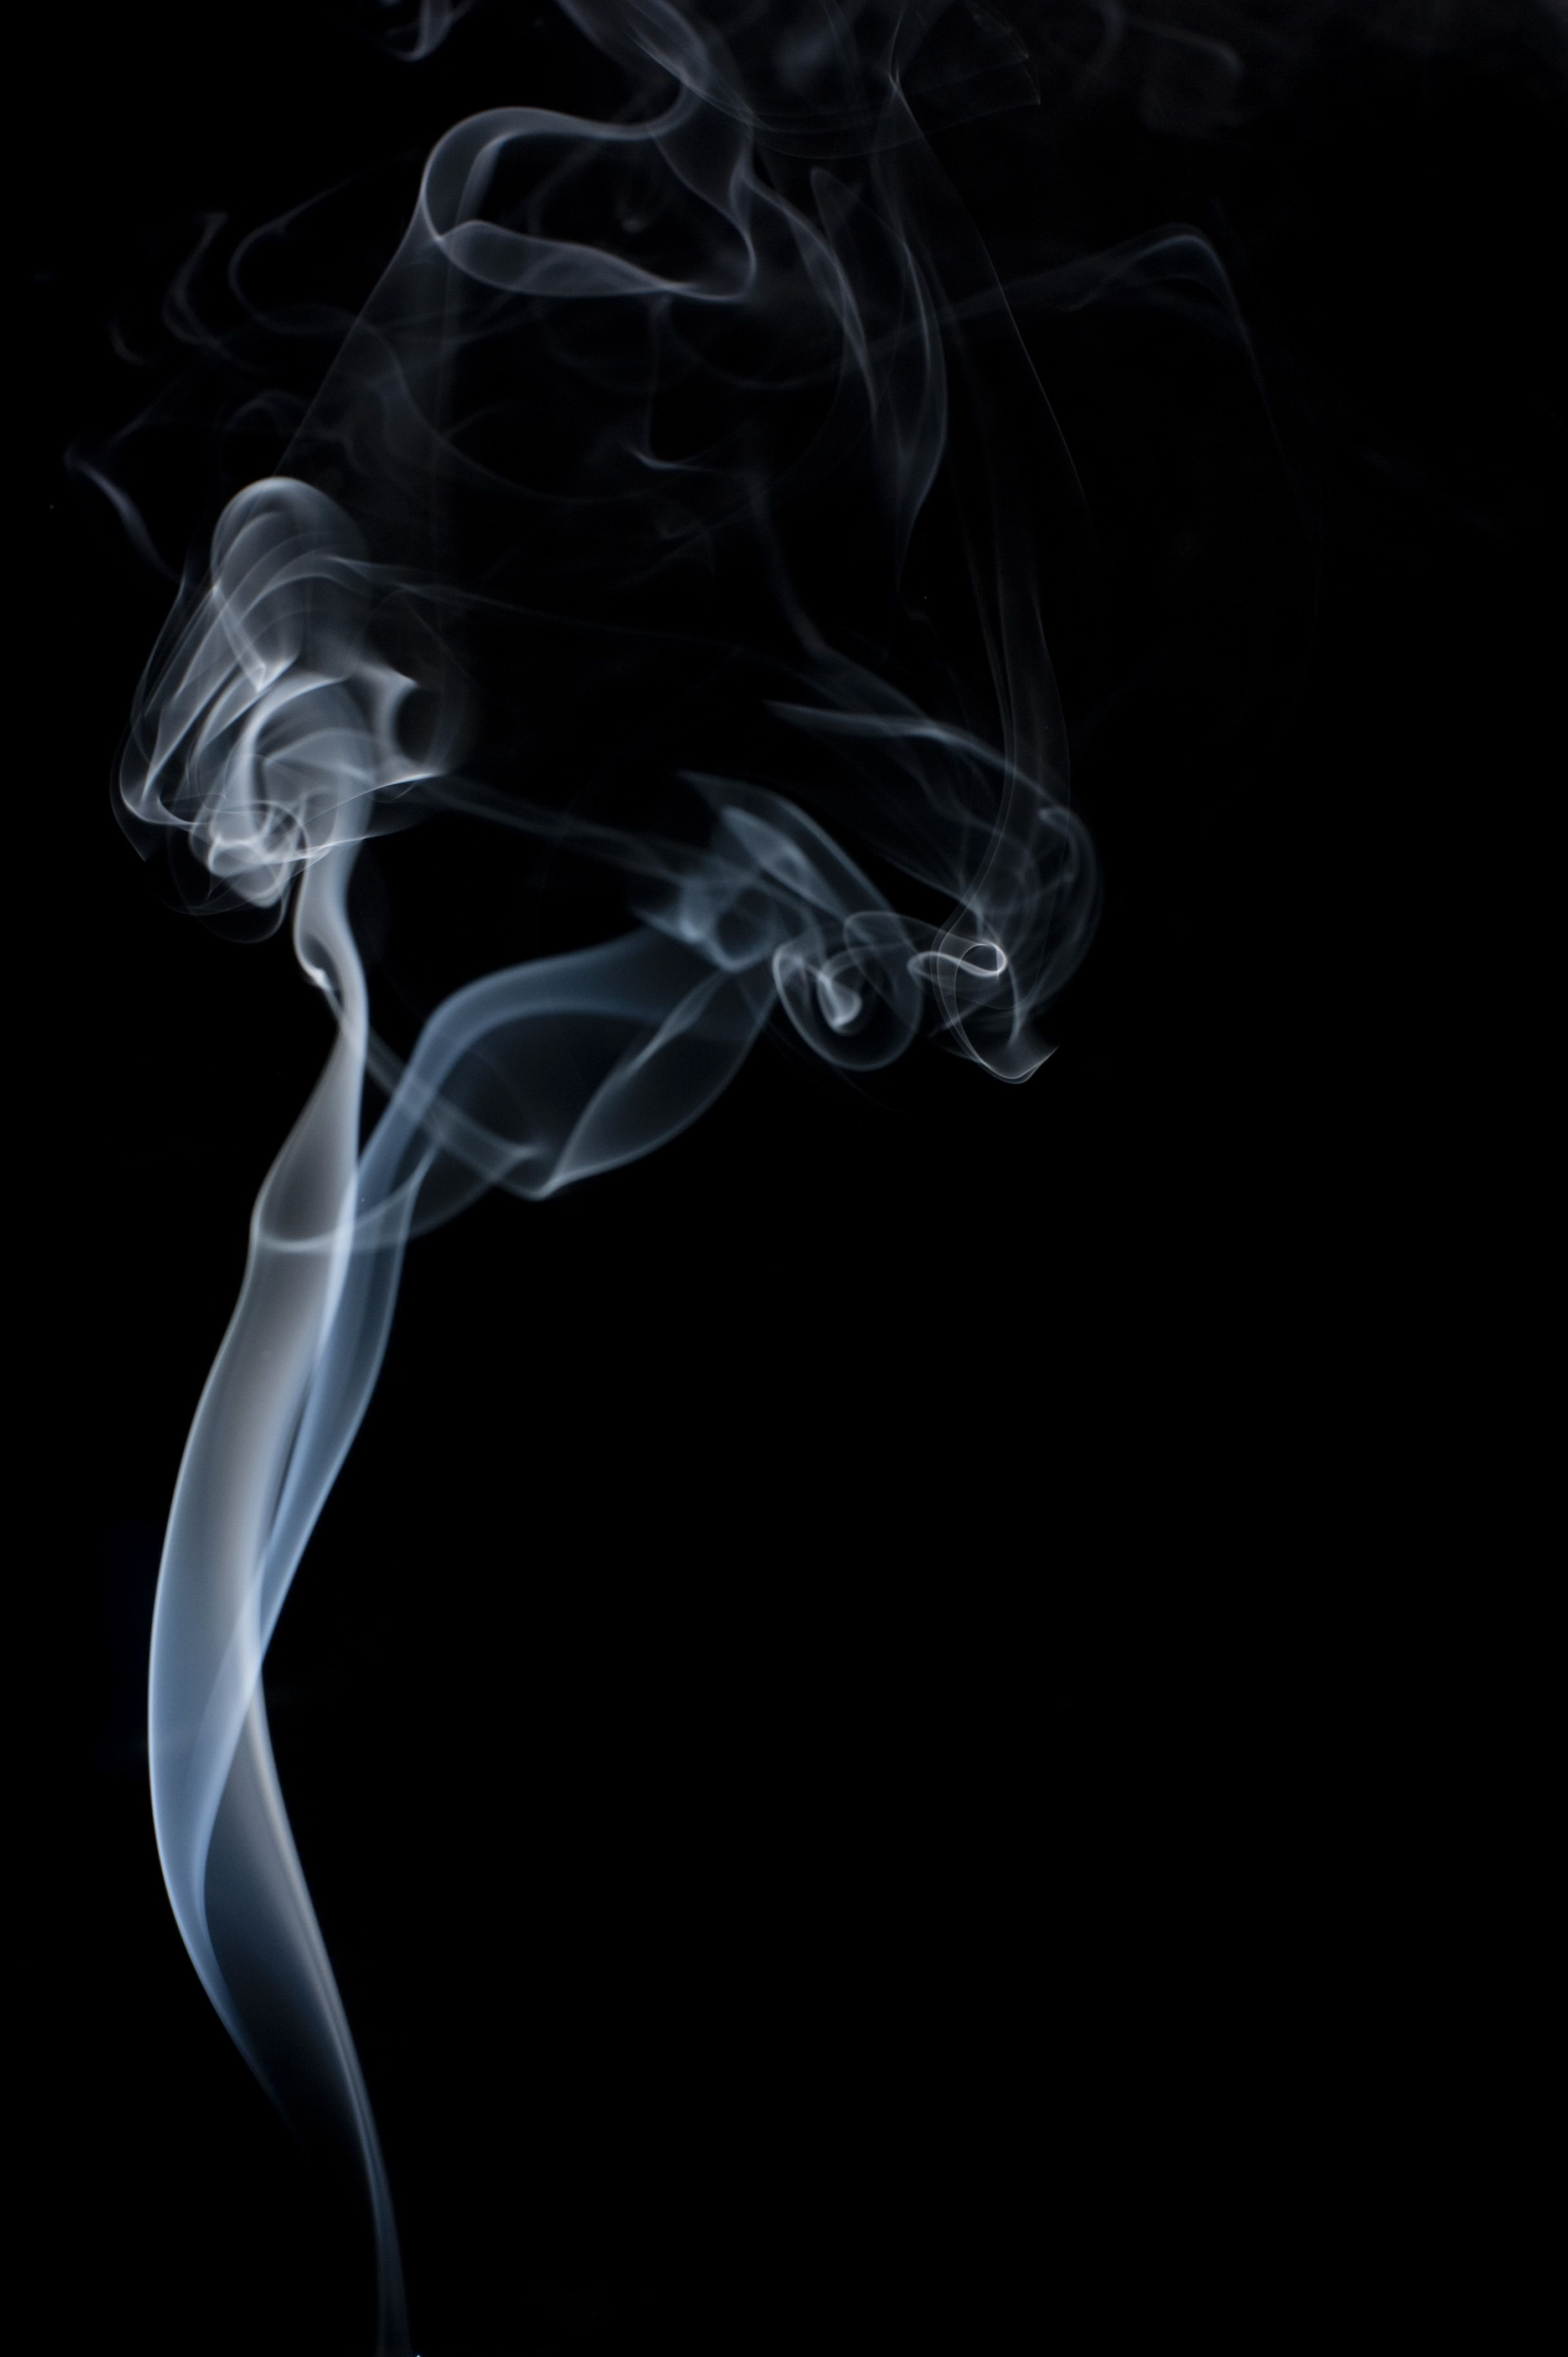 Smokey Black Background Smoke Find more Stunning background images